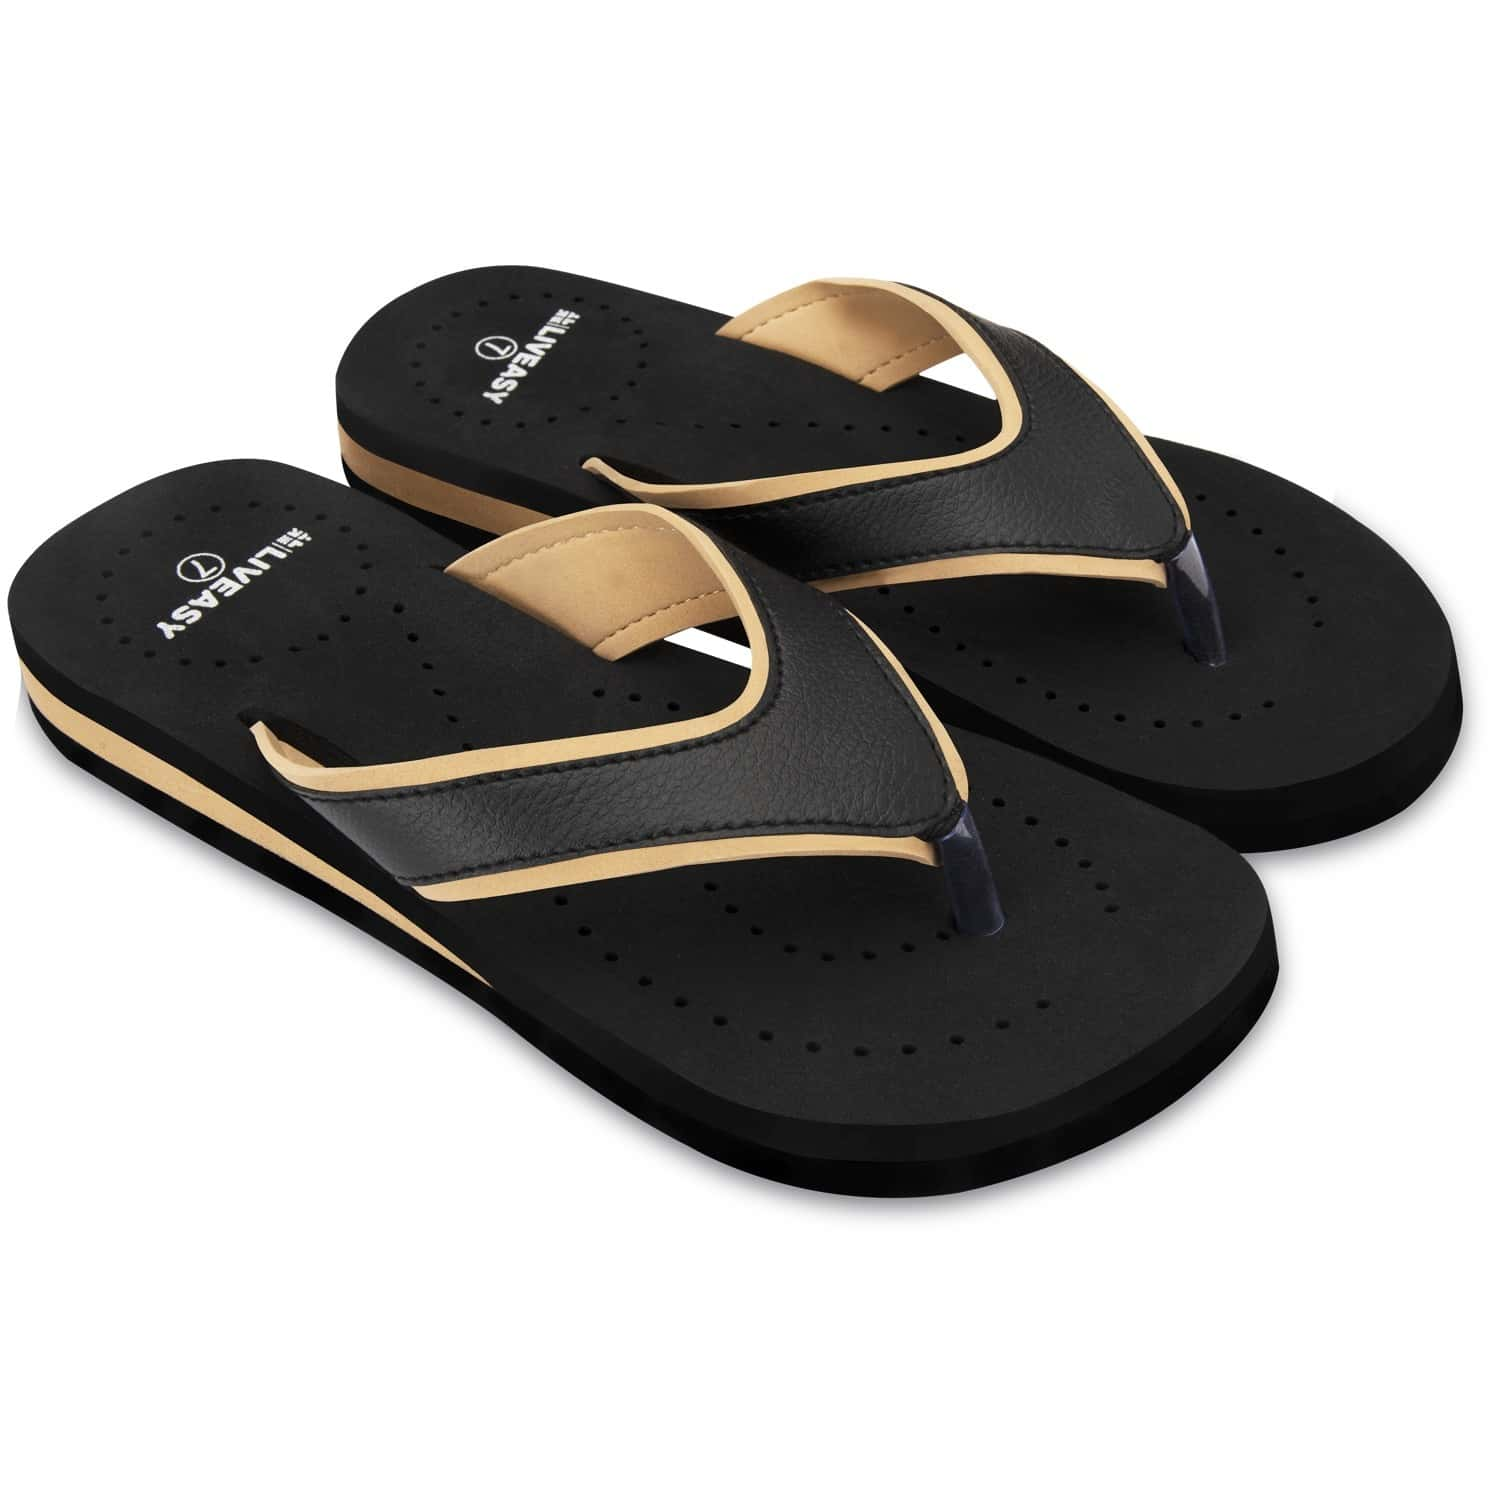 Liveasy Essentials Women's Diabetic & Orthopedic Slippers - Black With Yellow - Size Uk 5 / Us 8